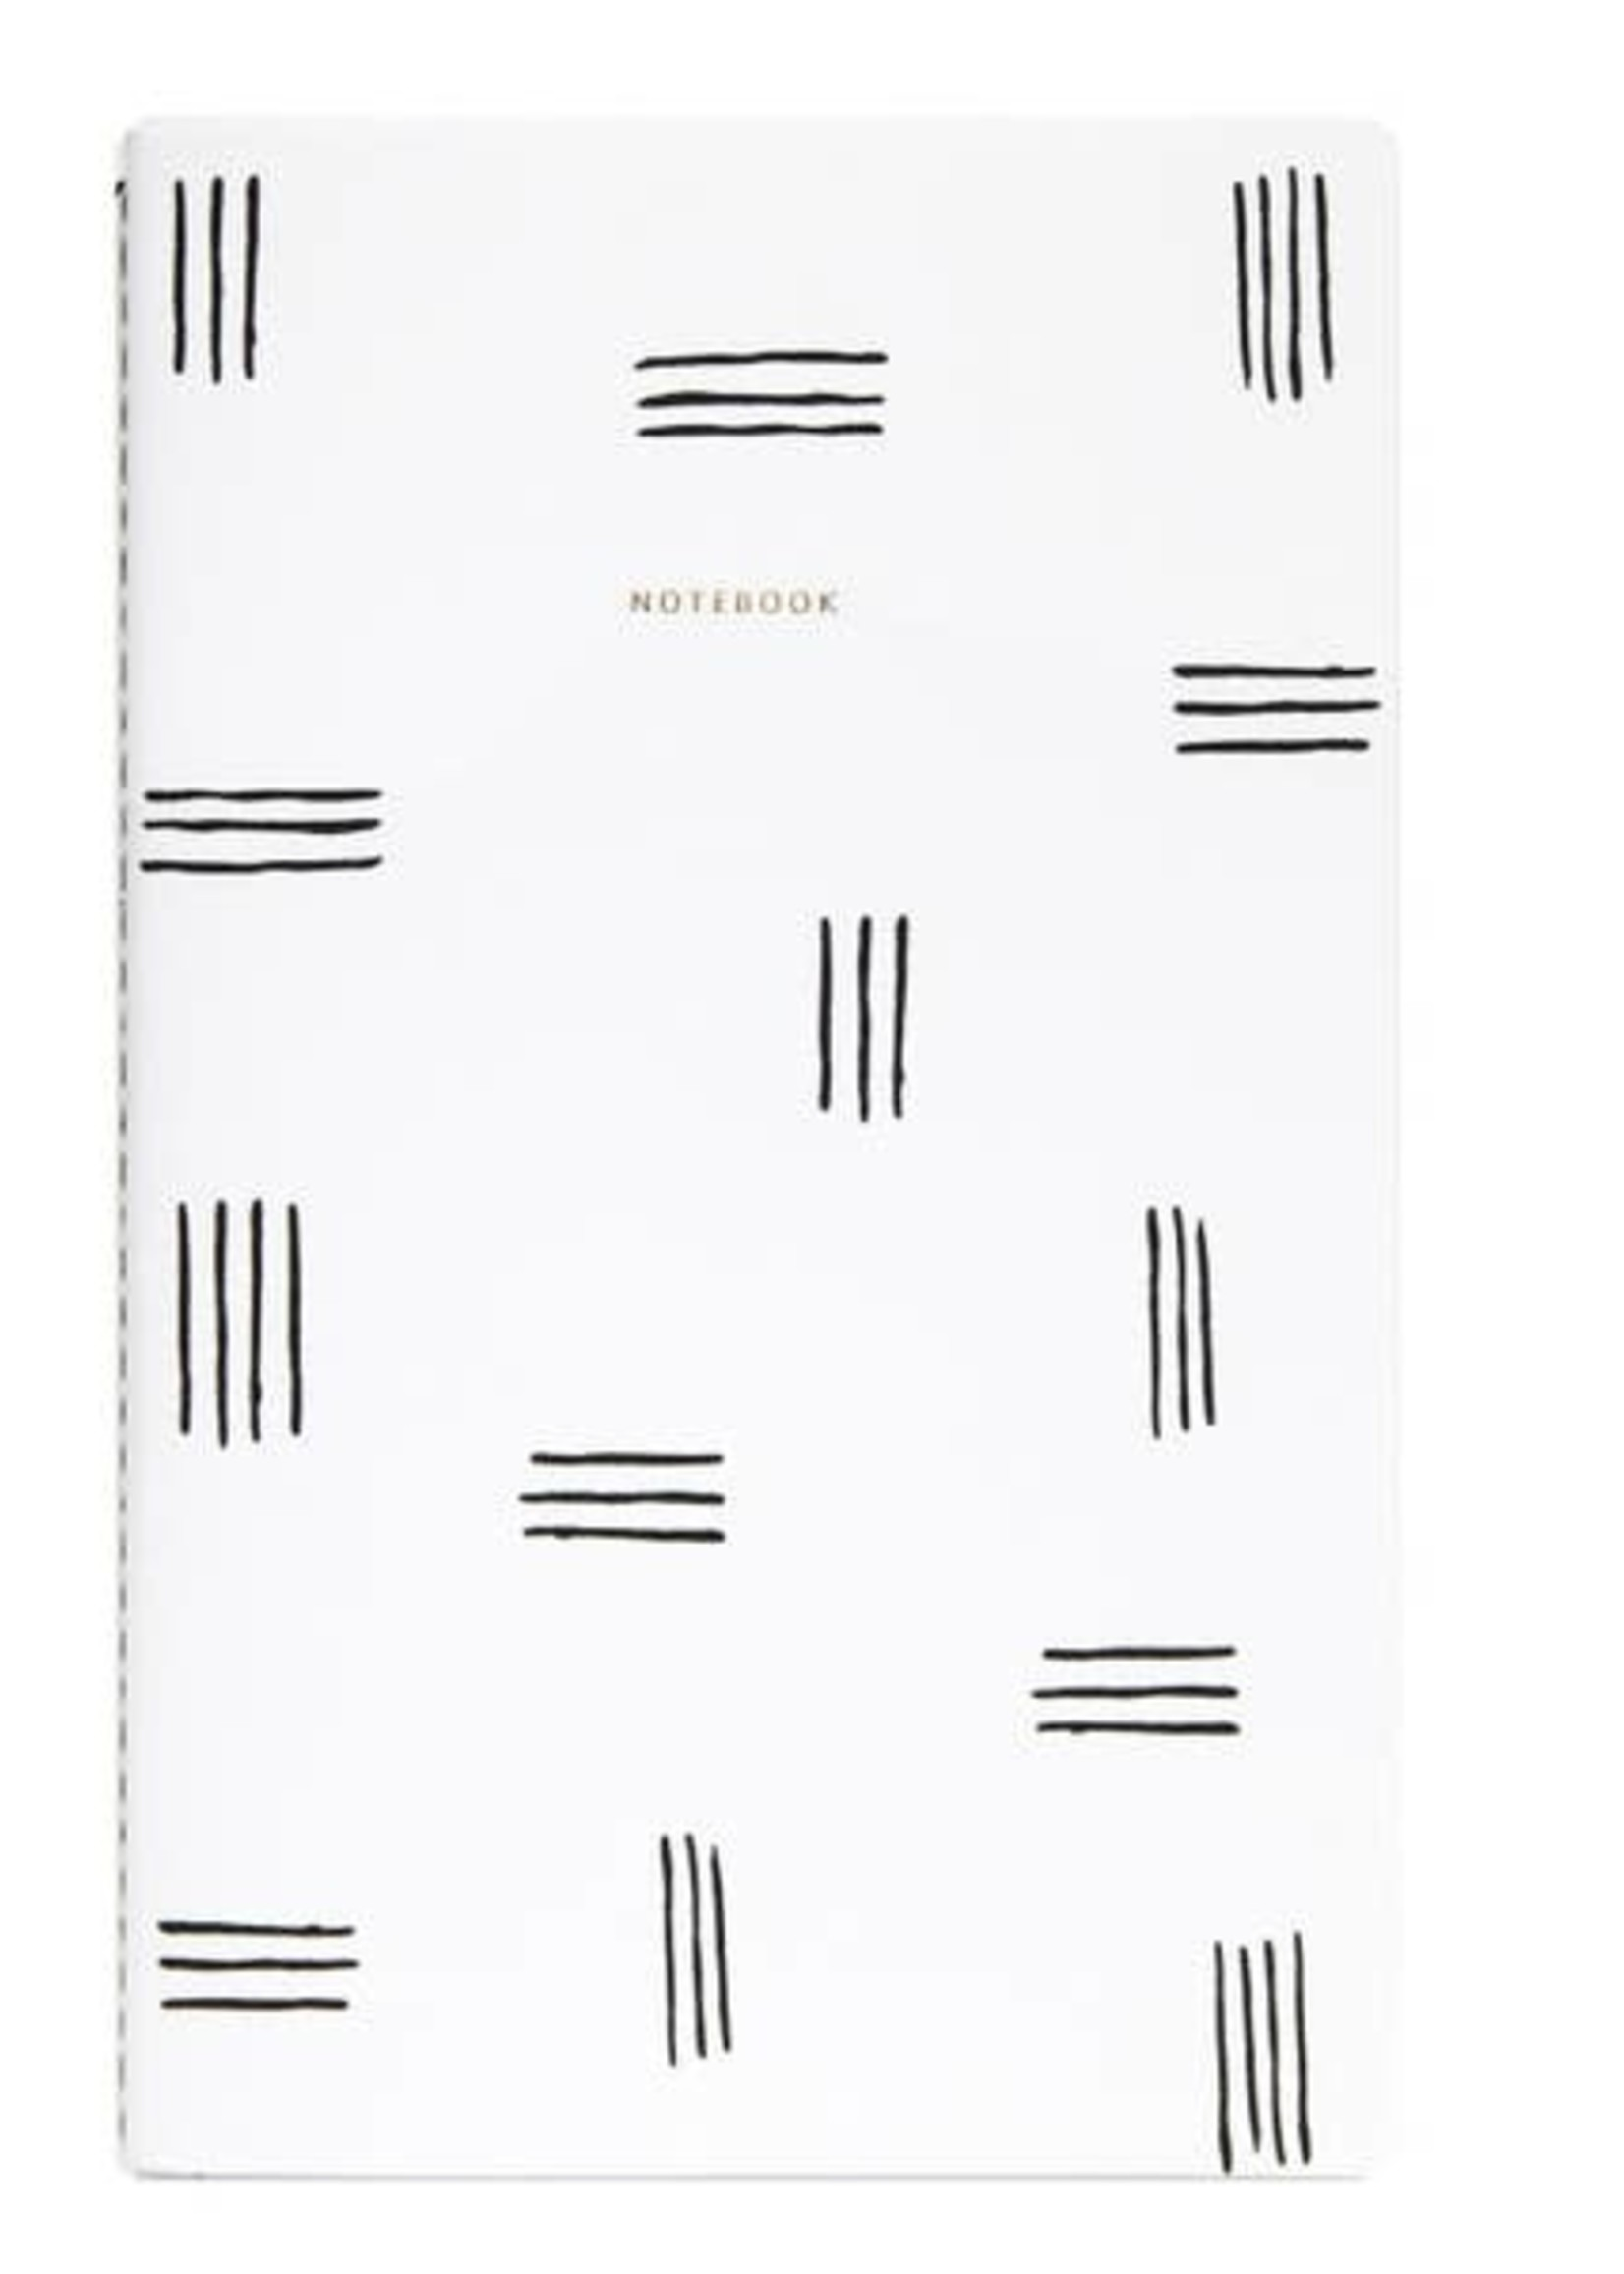 LeBLANC finds Lines Notebook